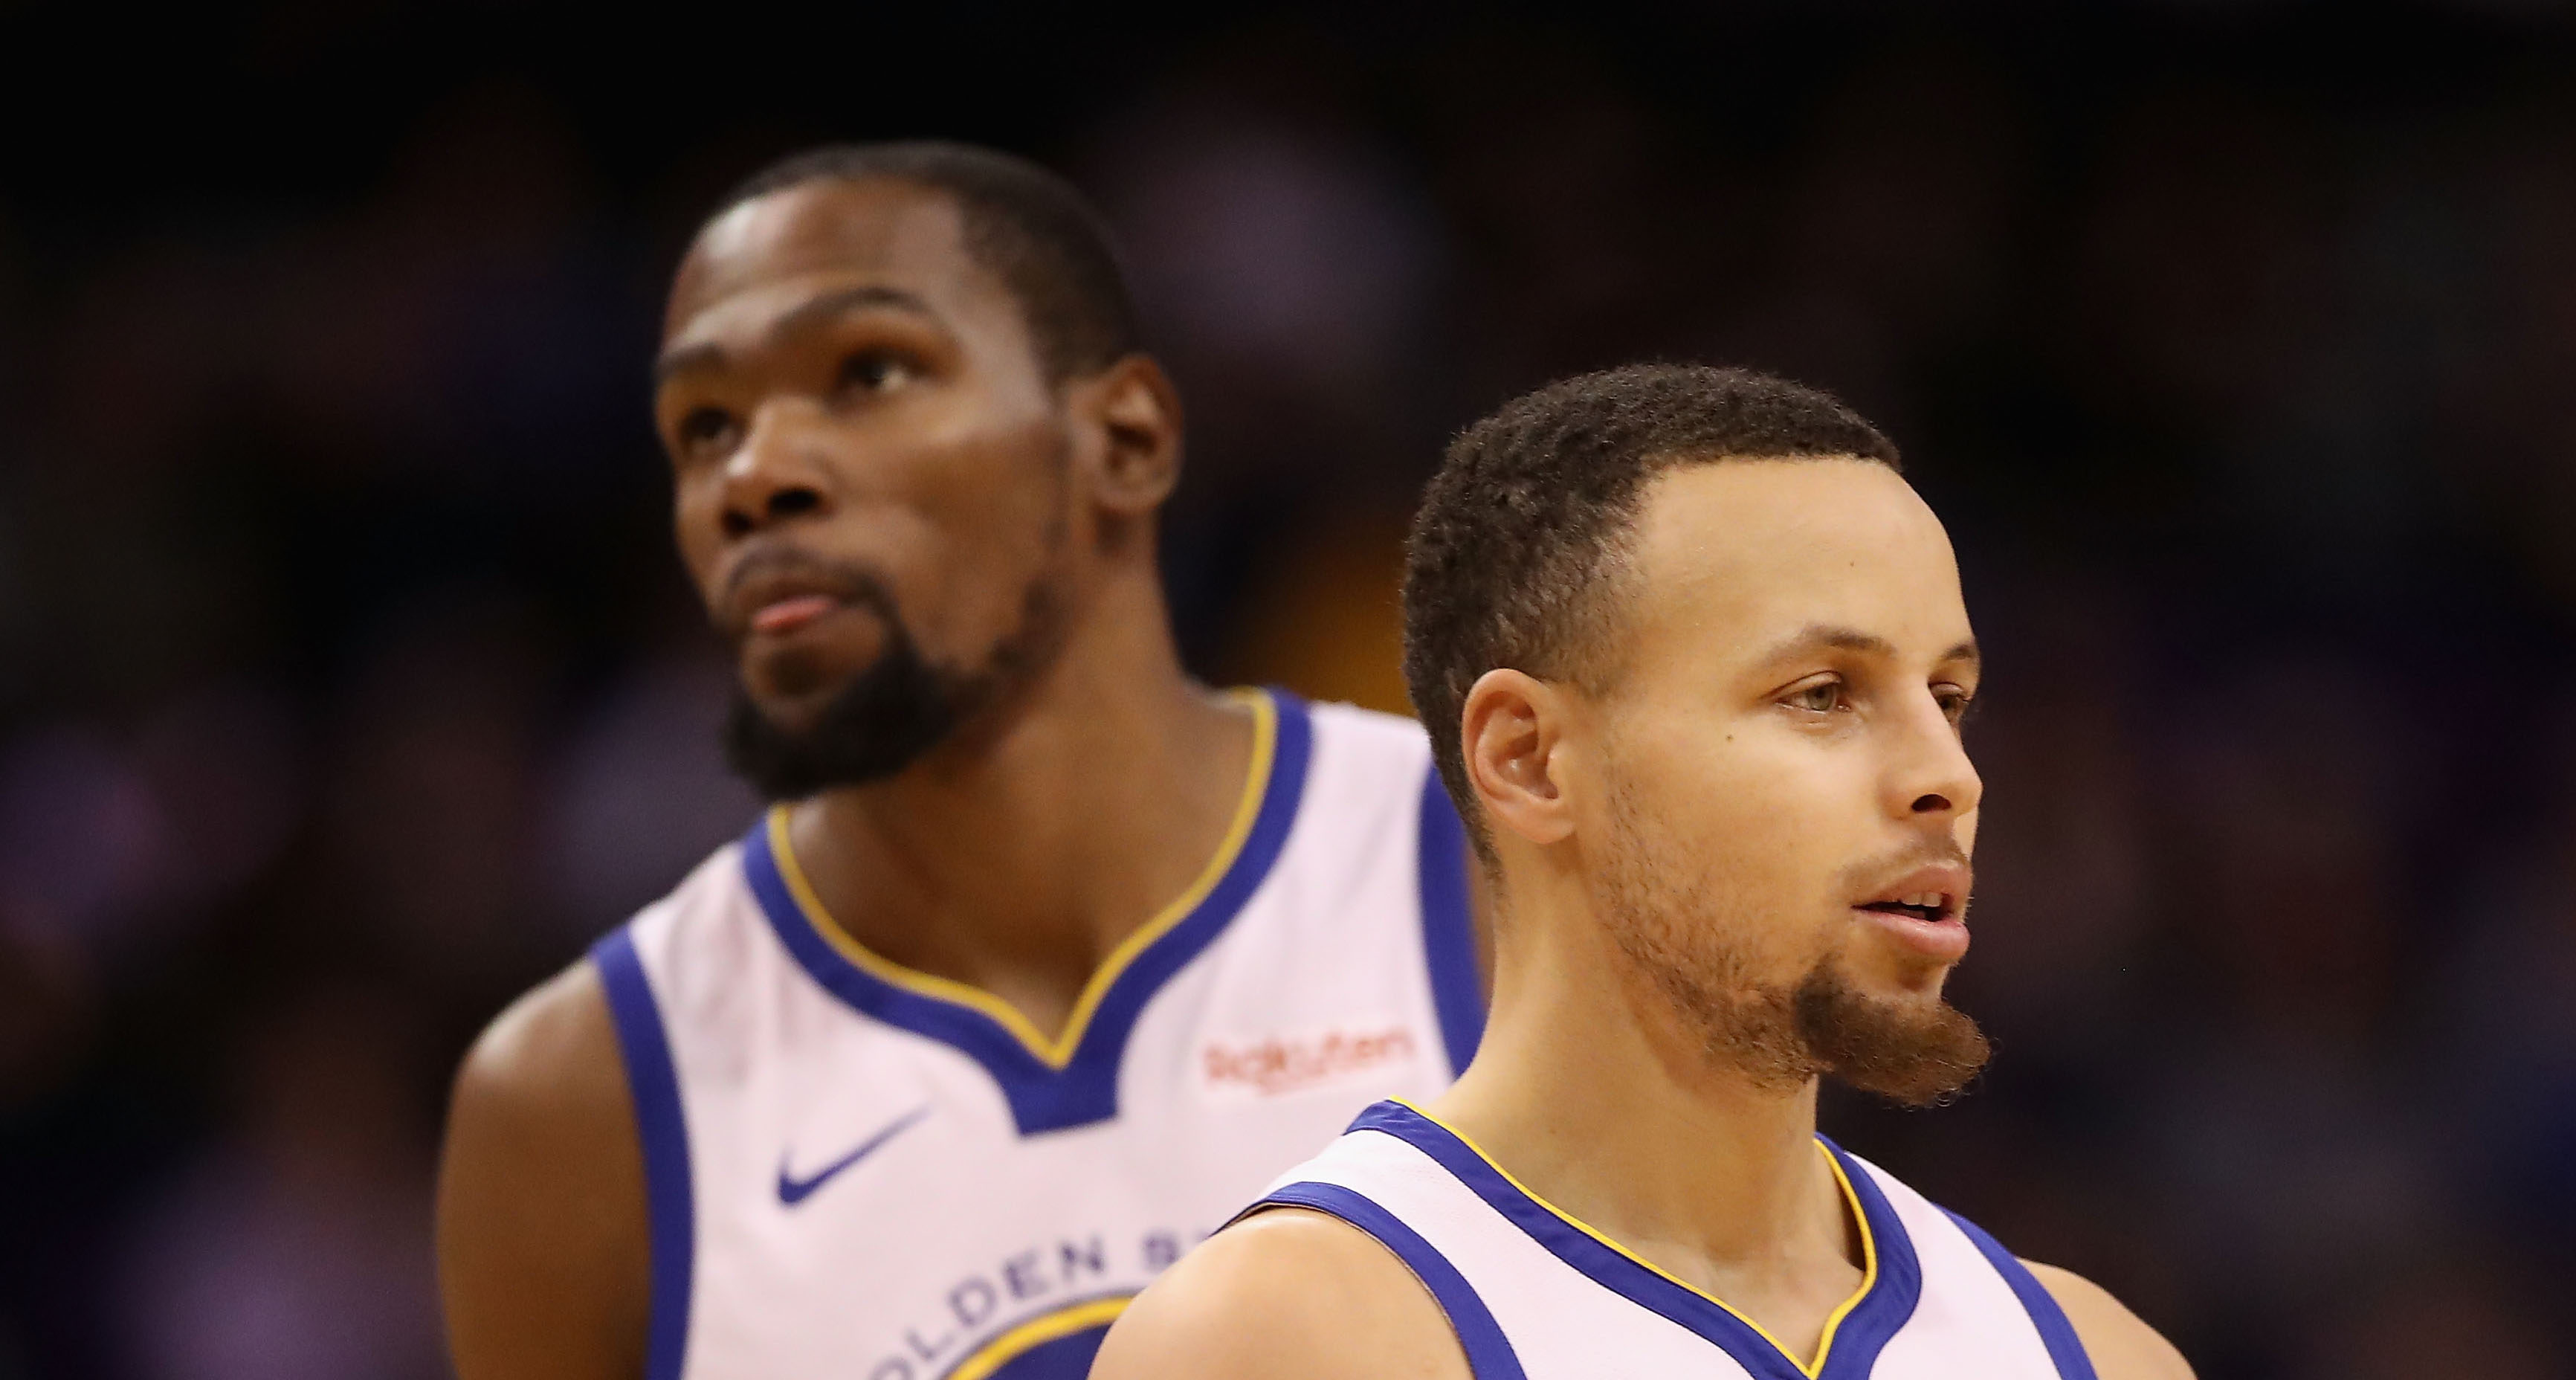 NBA Injury Report Updates for Stephen Curry, Kyrie Irving, Kevin Durant and DeMarcus Cousins